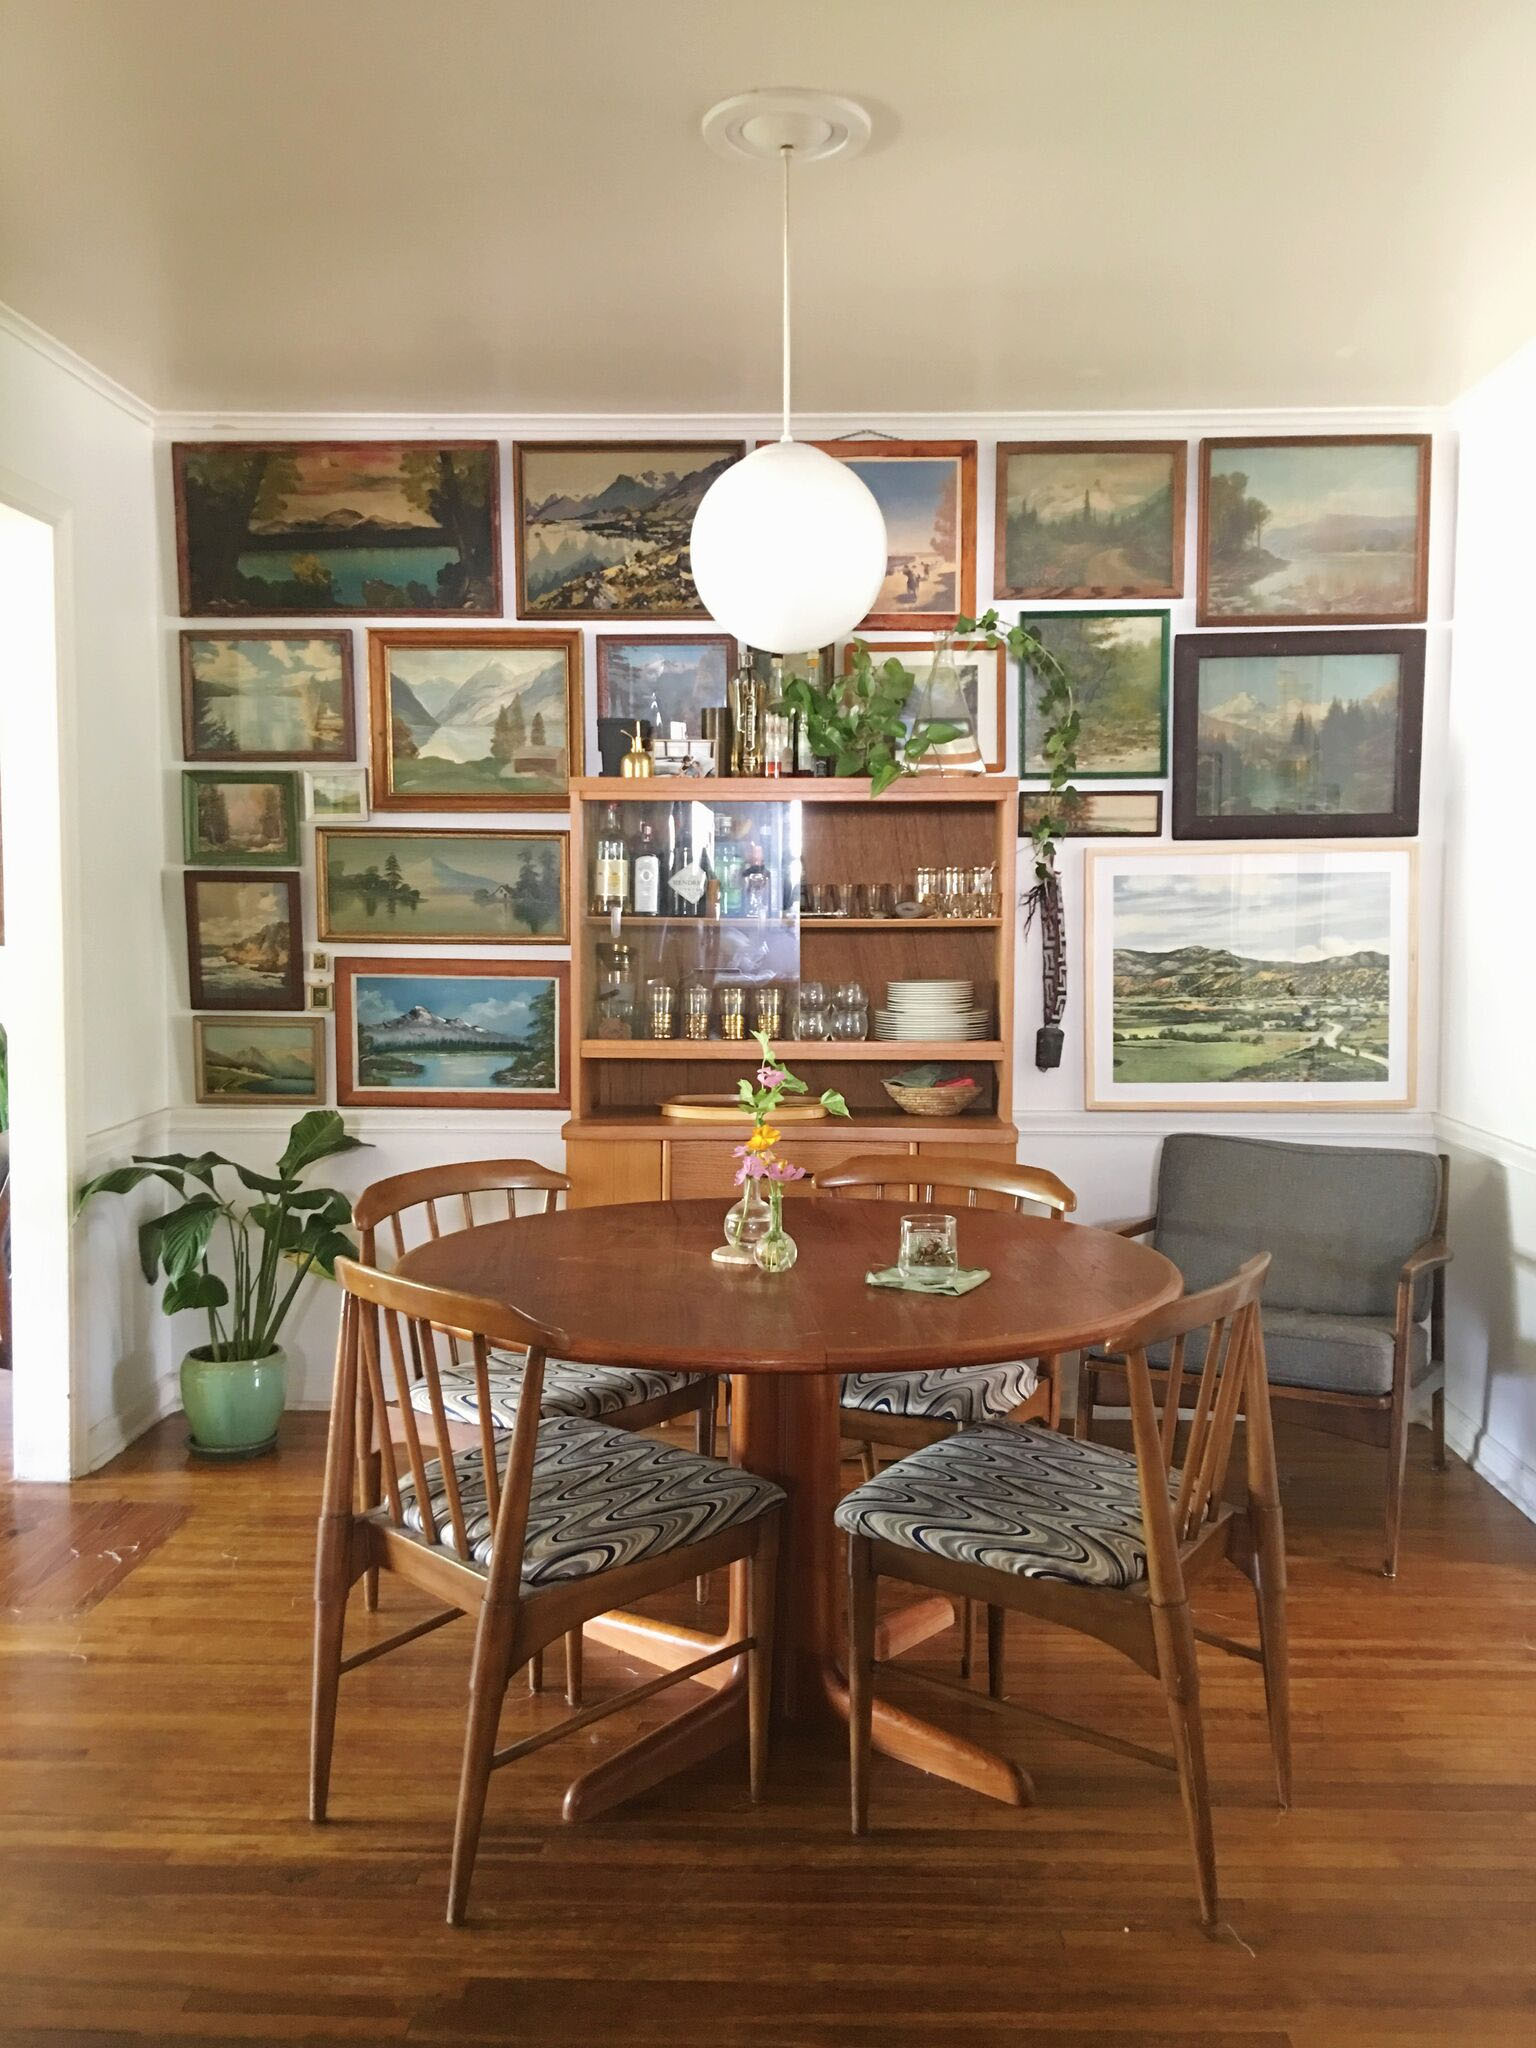 Photography provided by Retro Den : Daly's Dining Room